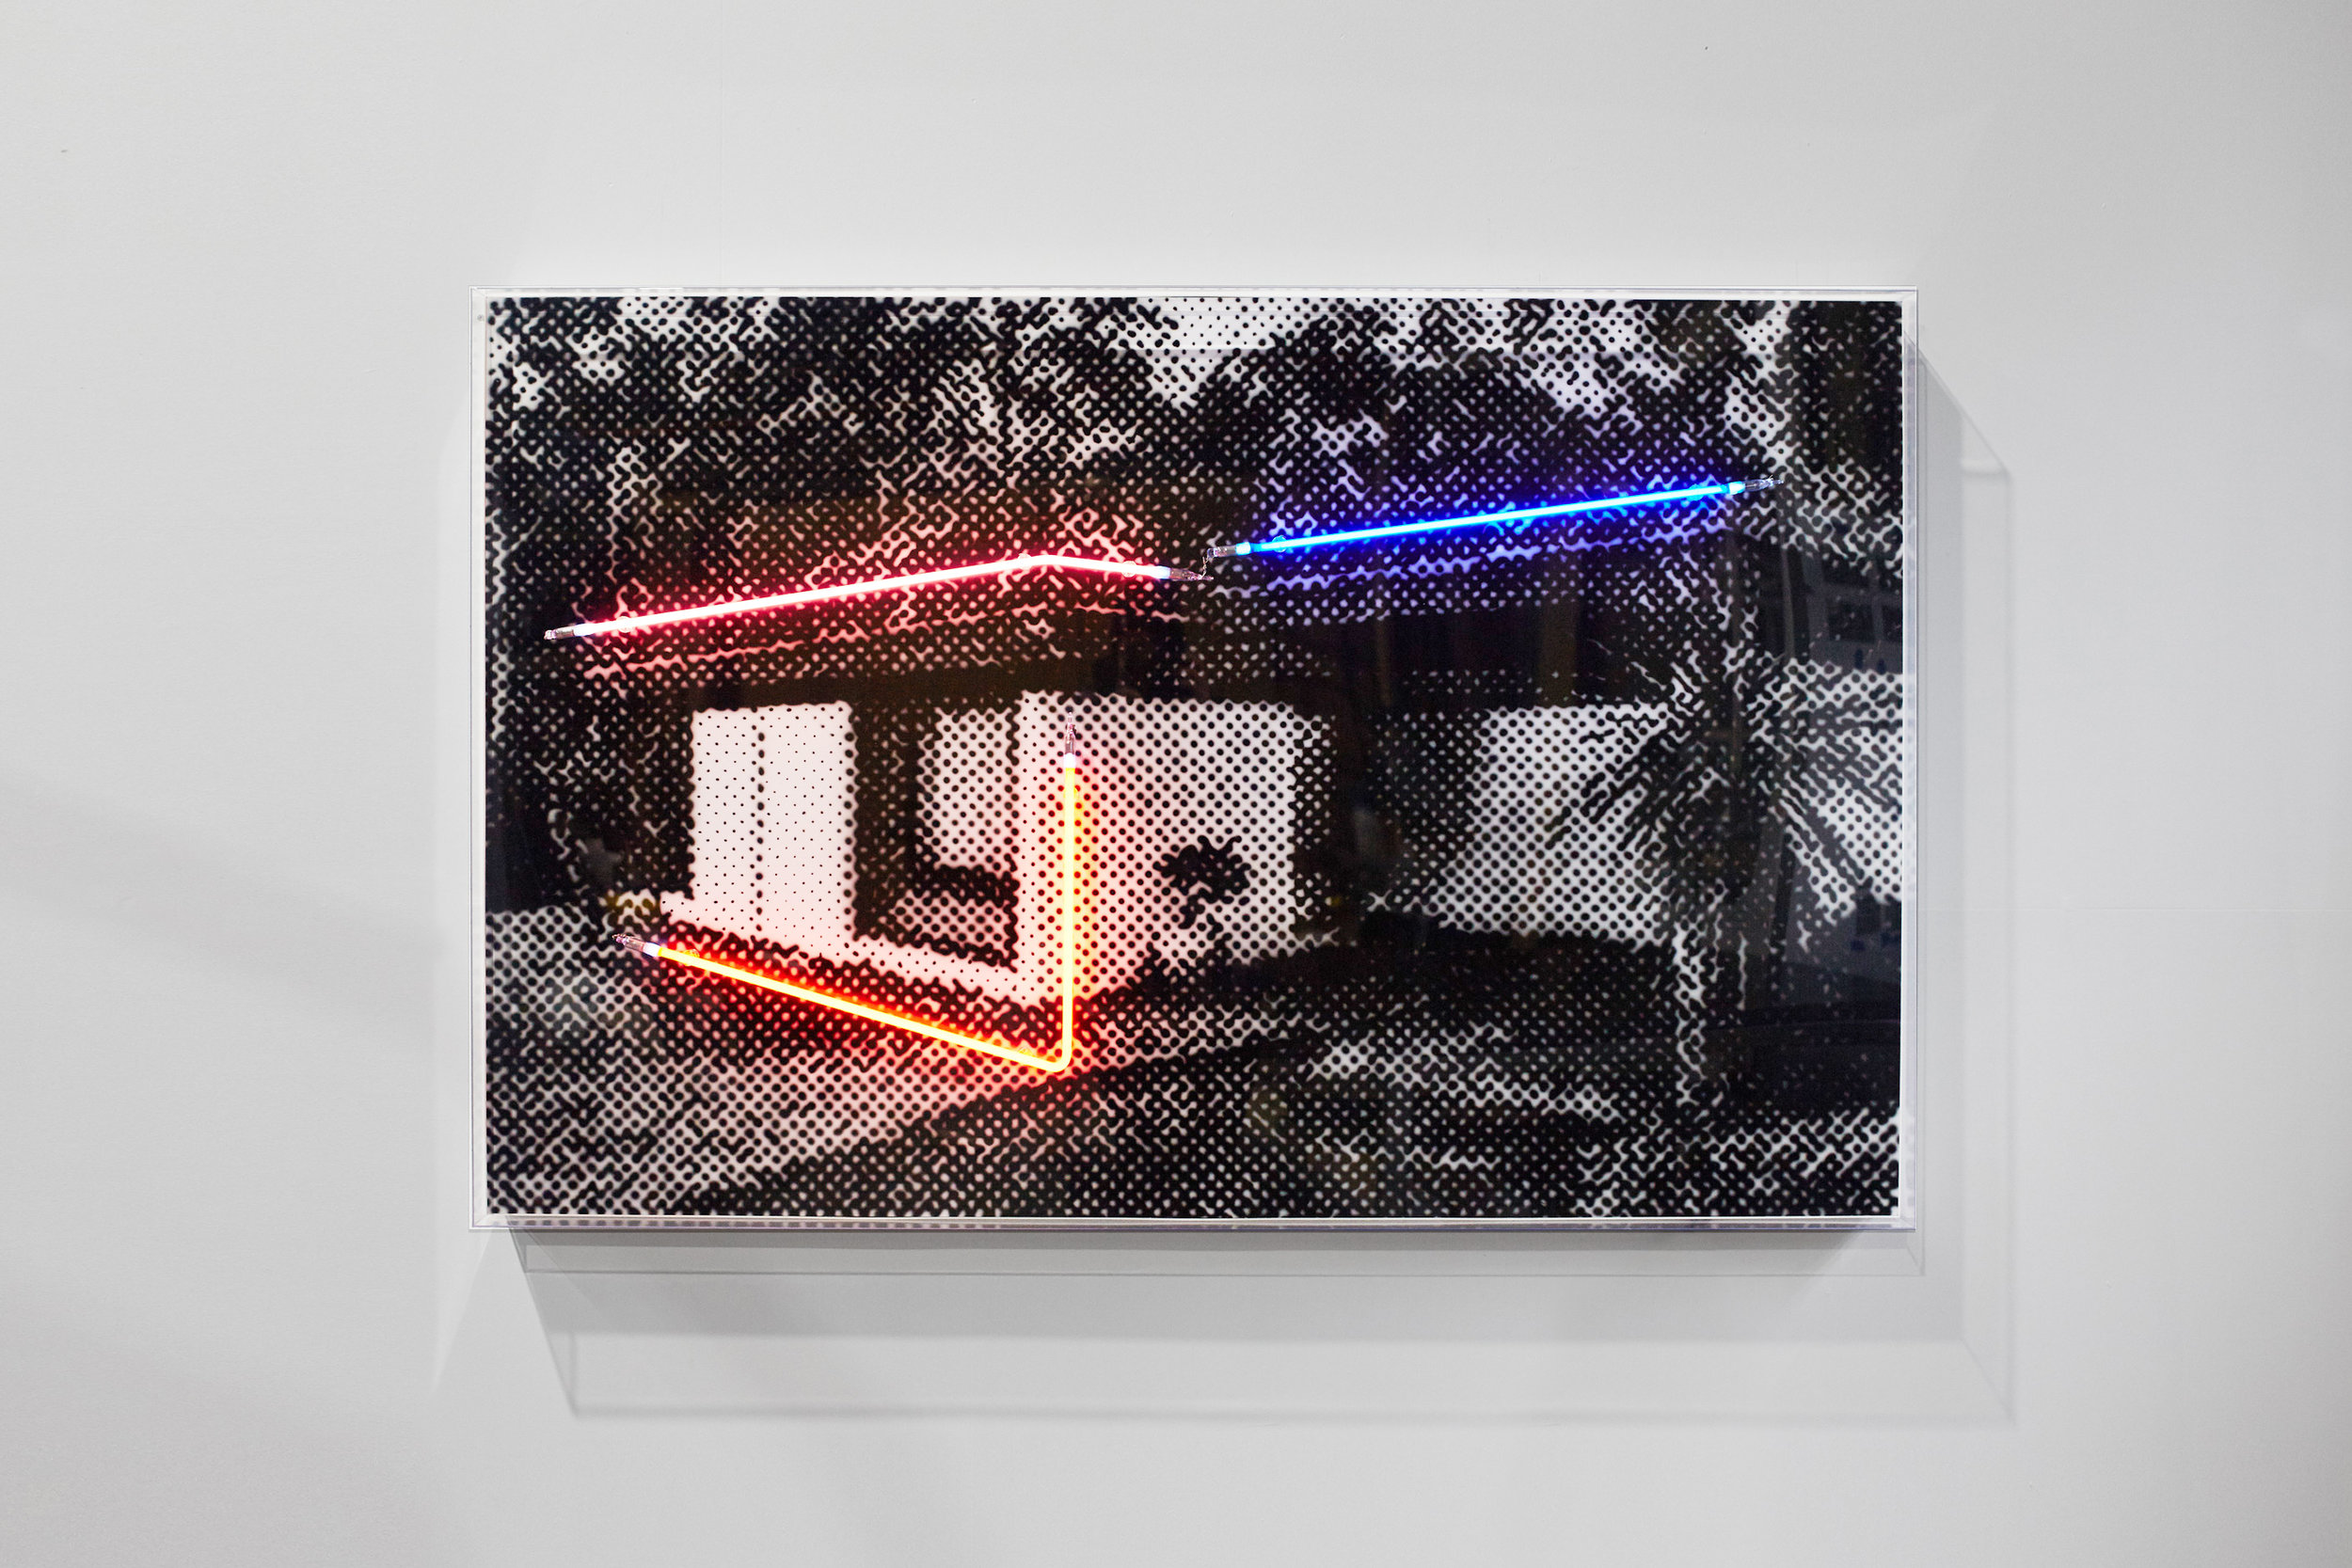 A quiet cul-de-sac  Airbrush acrylic polymer and neon on dibond, acrylic frame 110x170cm